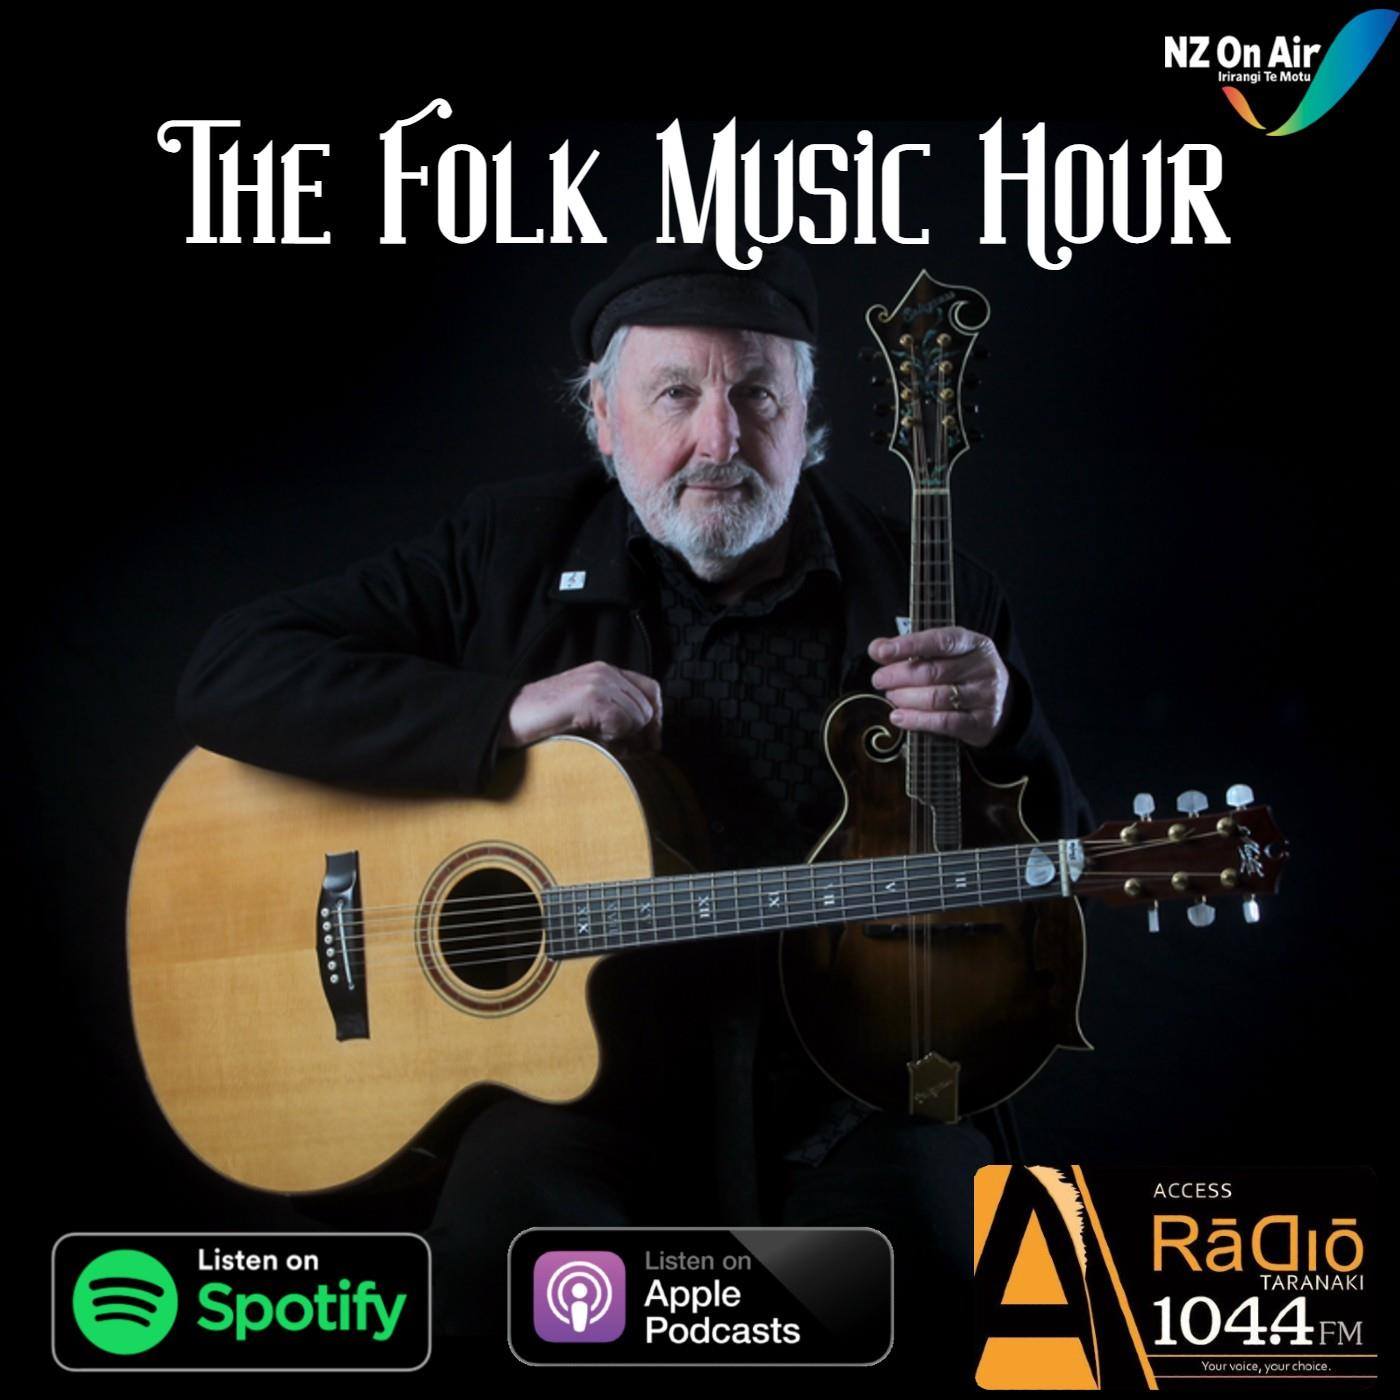 The Folk Music Hour 26-09-2021 All Folked Up